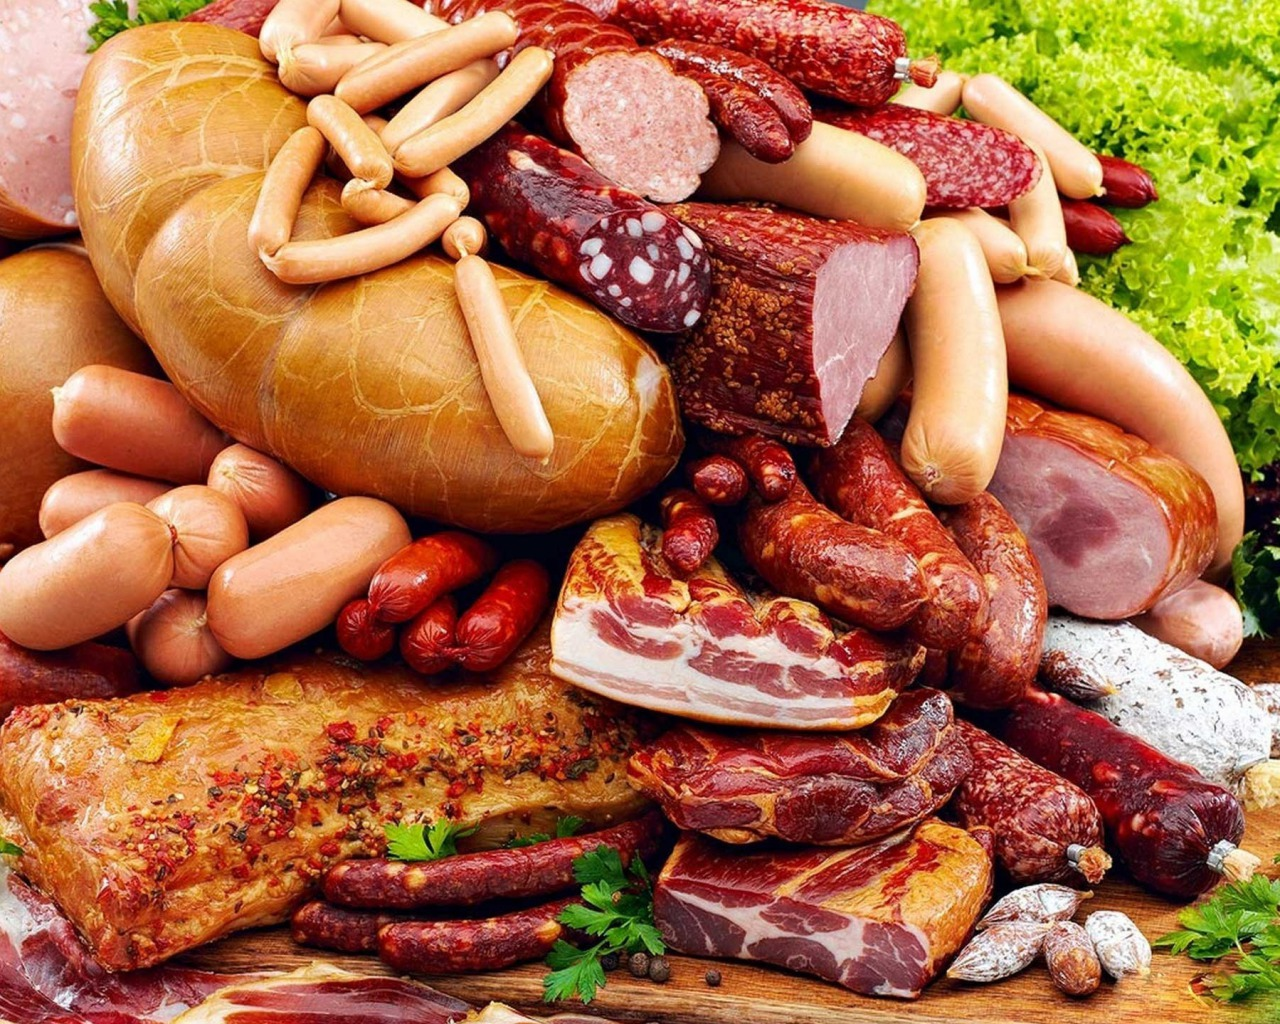 Red and Processed Meat